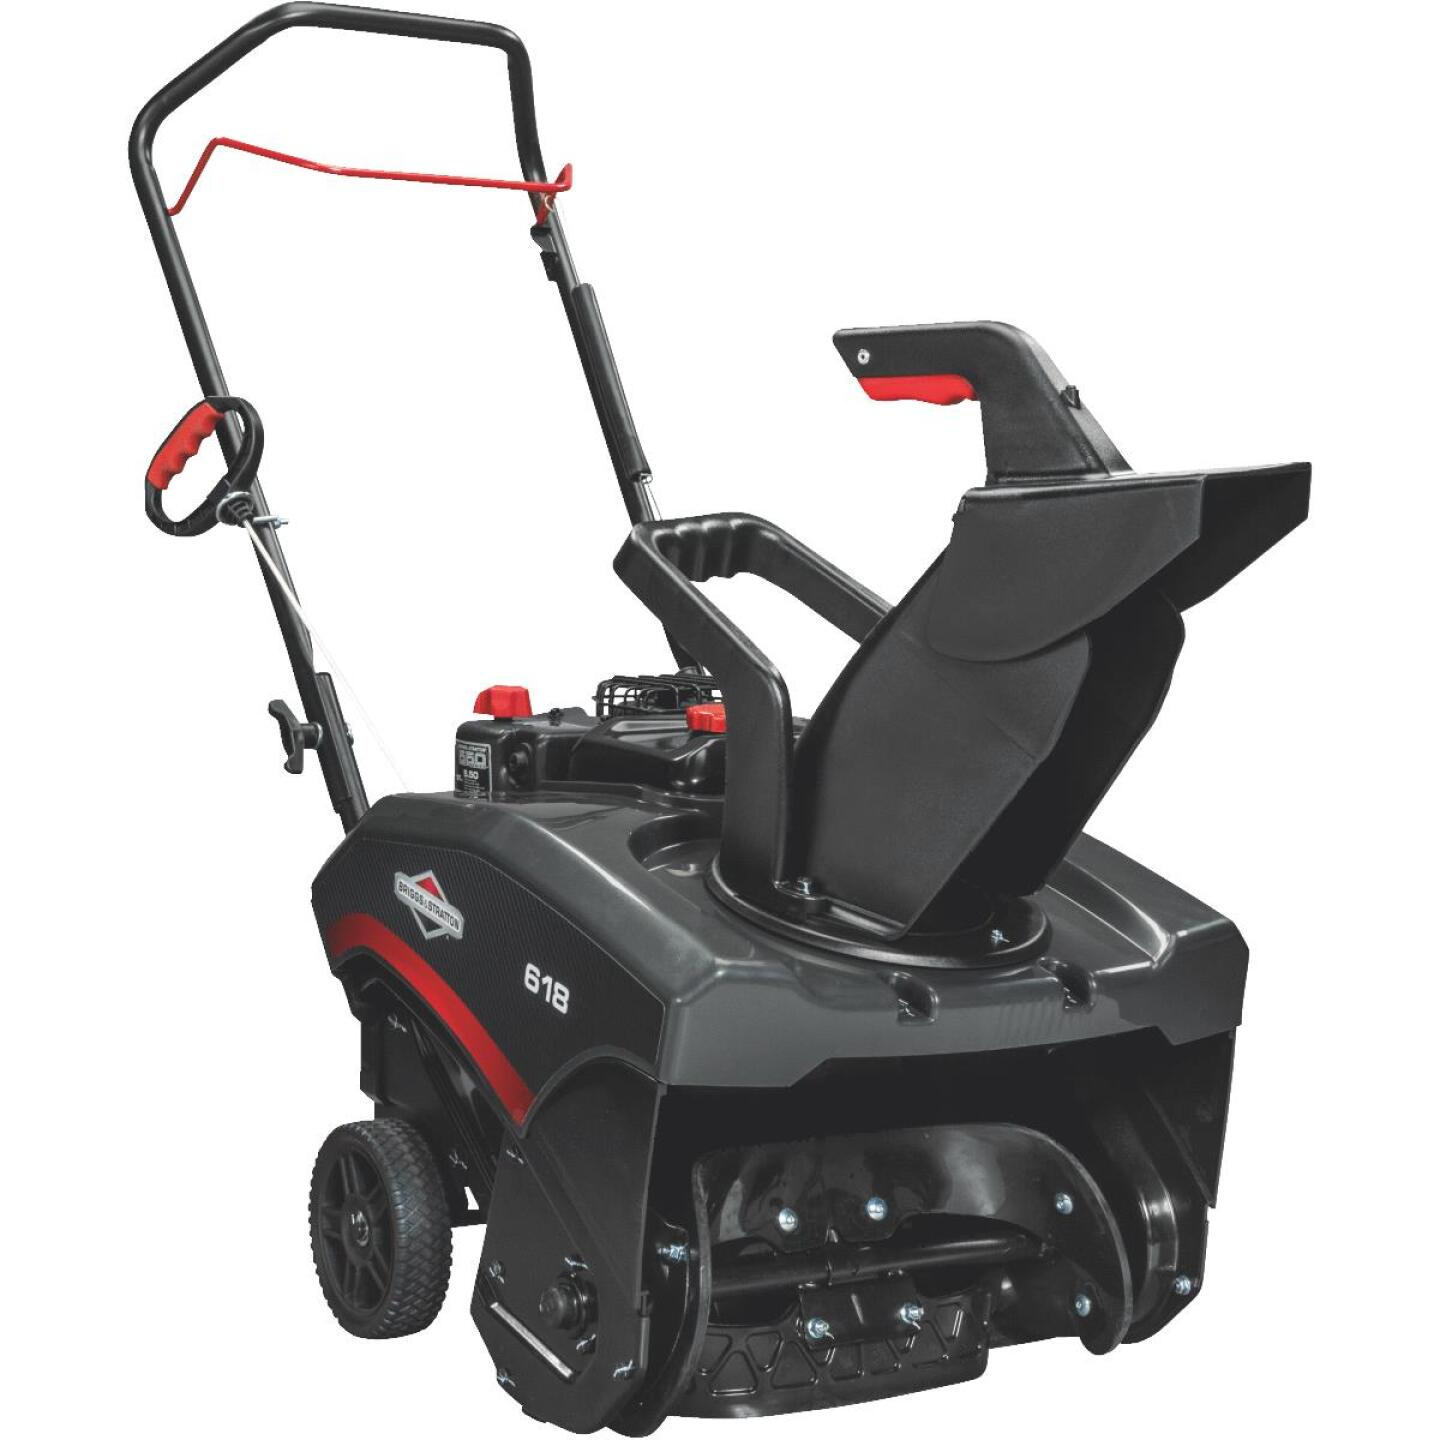 Briggs & Stratton 18 In. 127cc Single Stage 5.5 TP Manual Rotation Gas Snow Blower Image 1